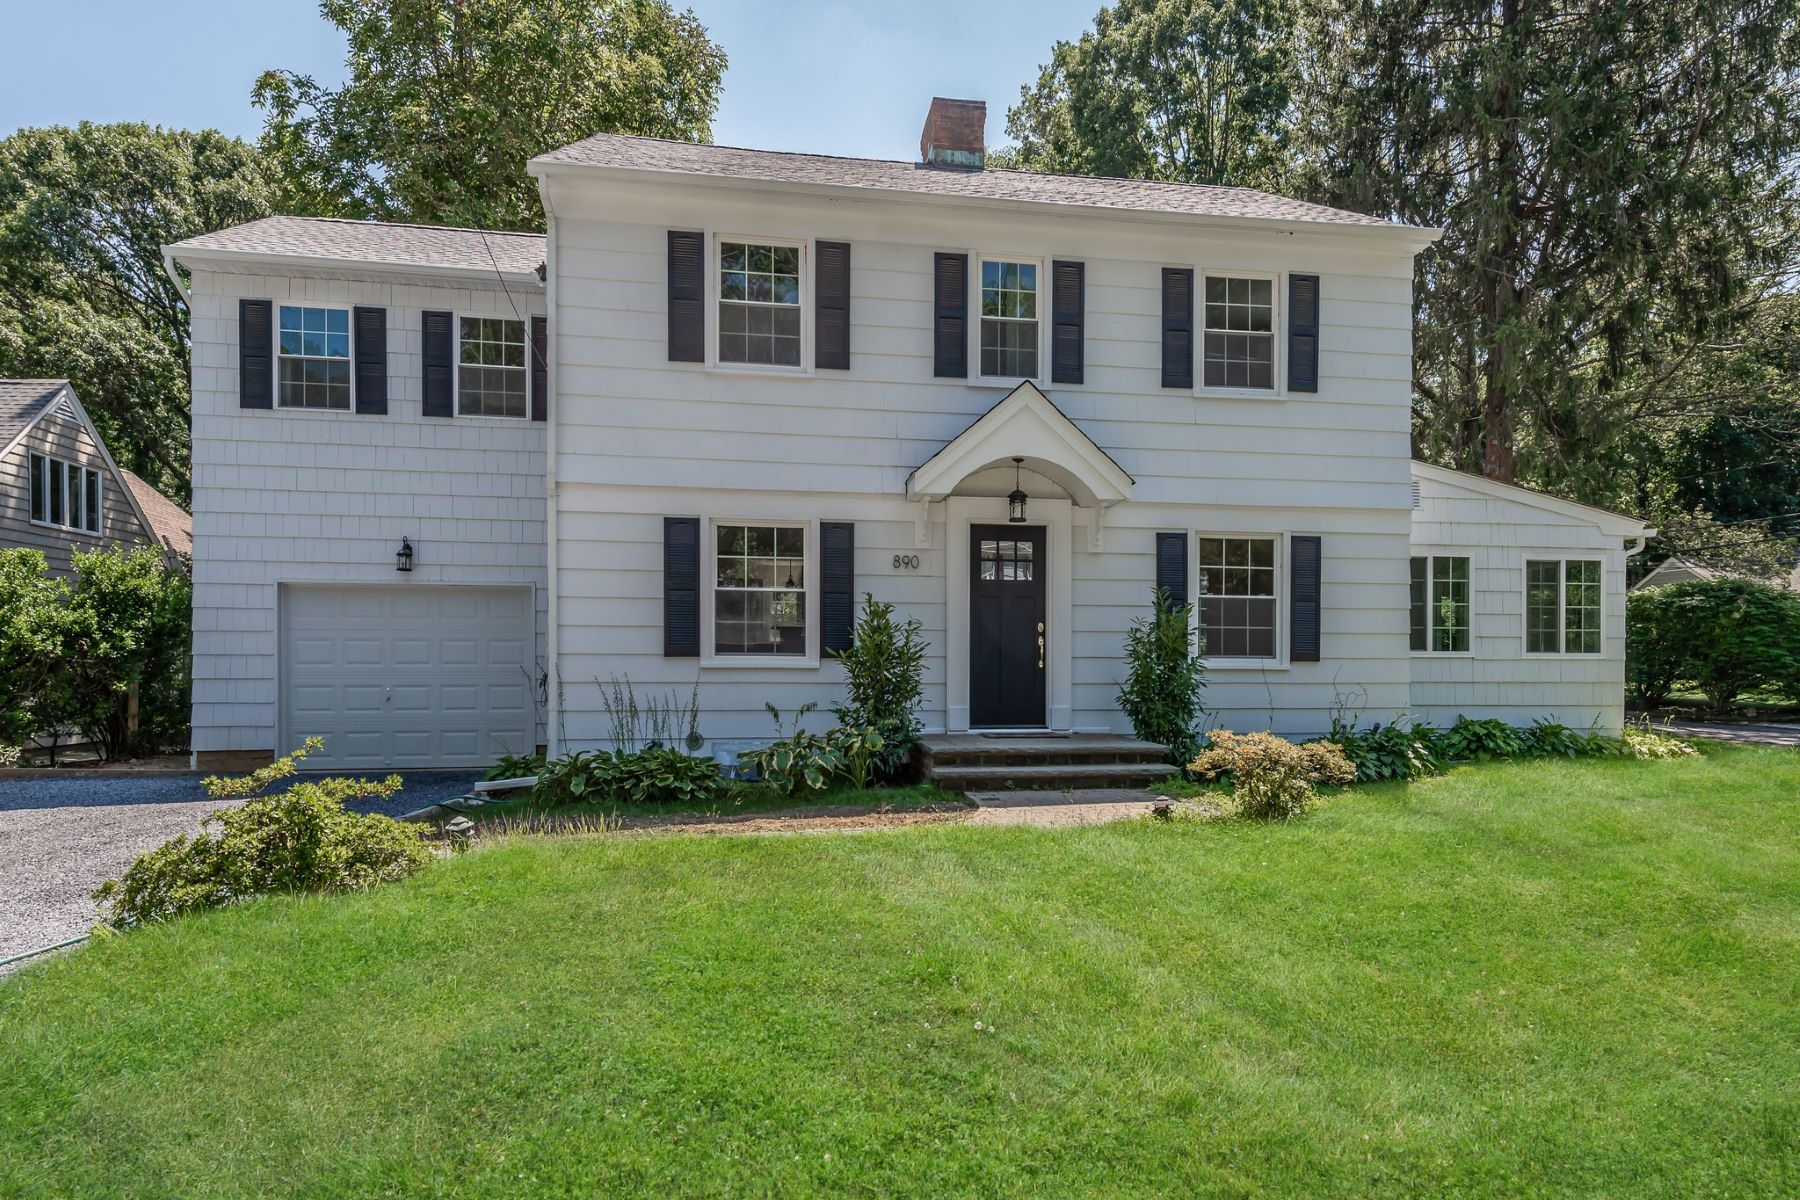 Single Family Homes for Active at Oyster Bay 890 Hilltop Rd Oyster Bay, New York 11771 United States